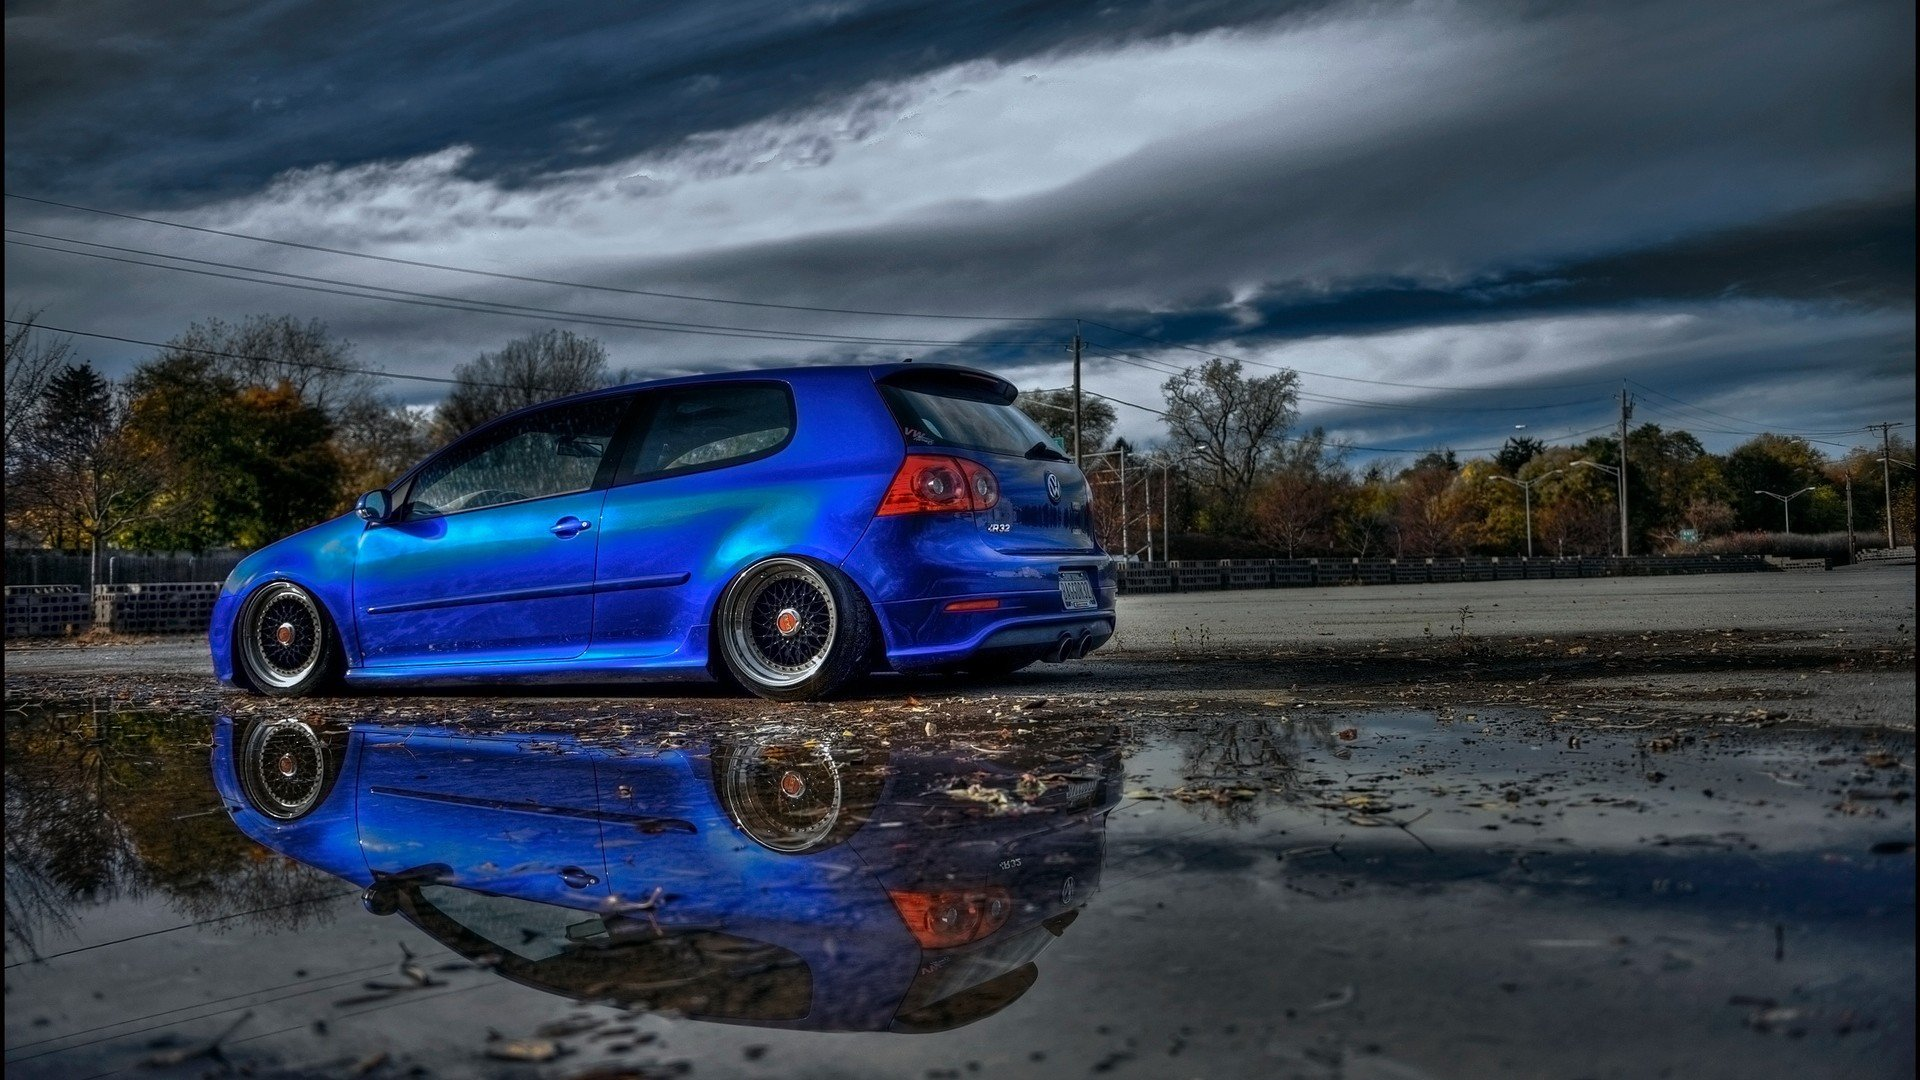 Cars Vehicles Transportation Wheels Volkswagen Golf GTI R32 Automobiles Wallpaper